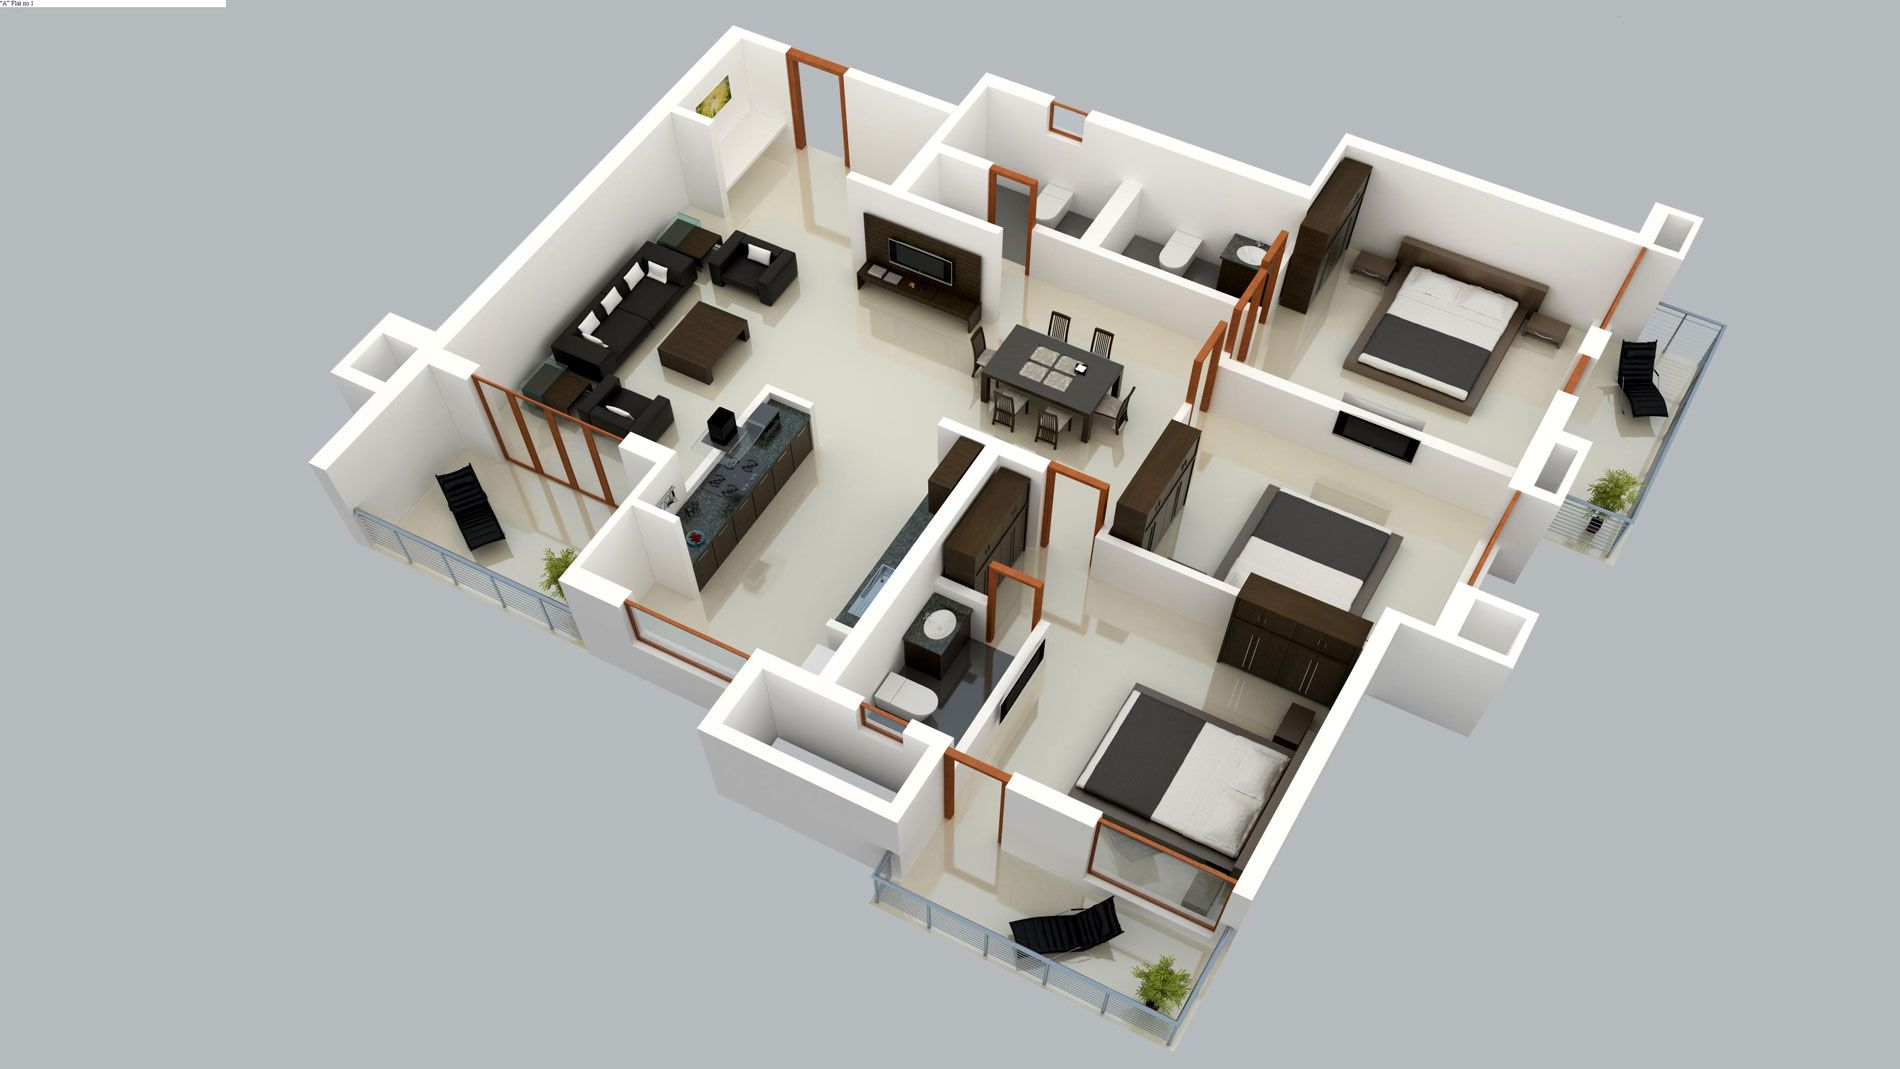 Pin by Juth Mac on Interior Design 3D Plans | Pinterest | Interiors